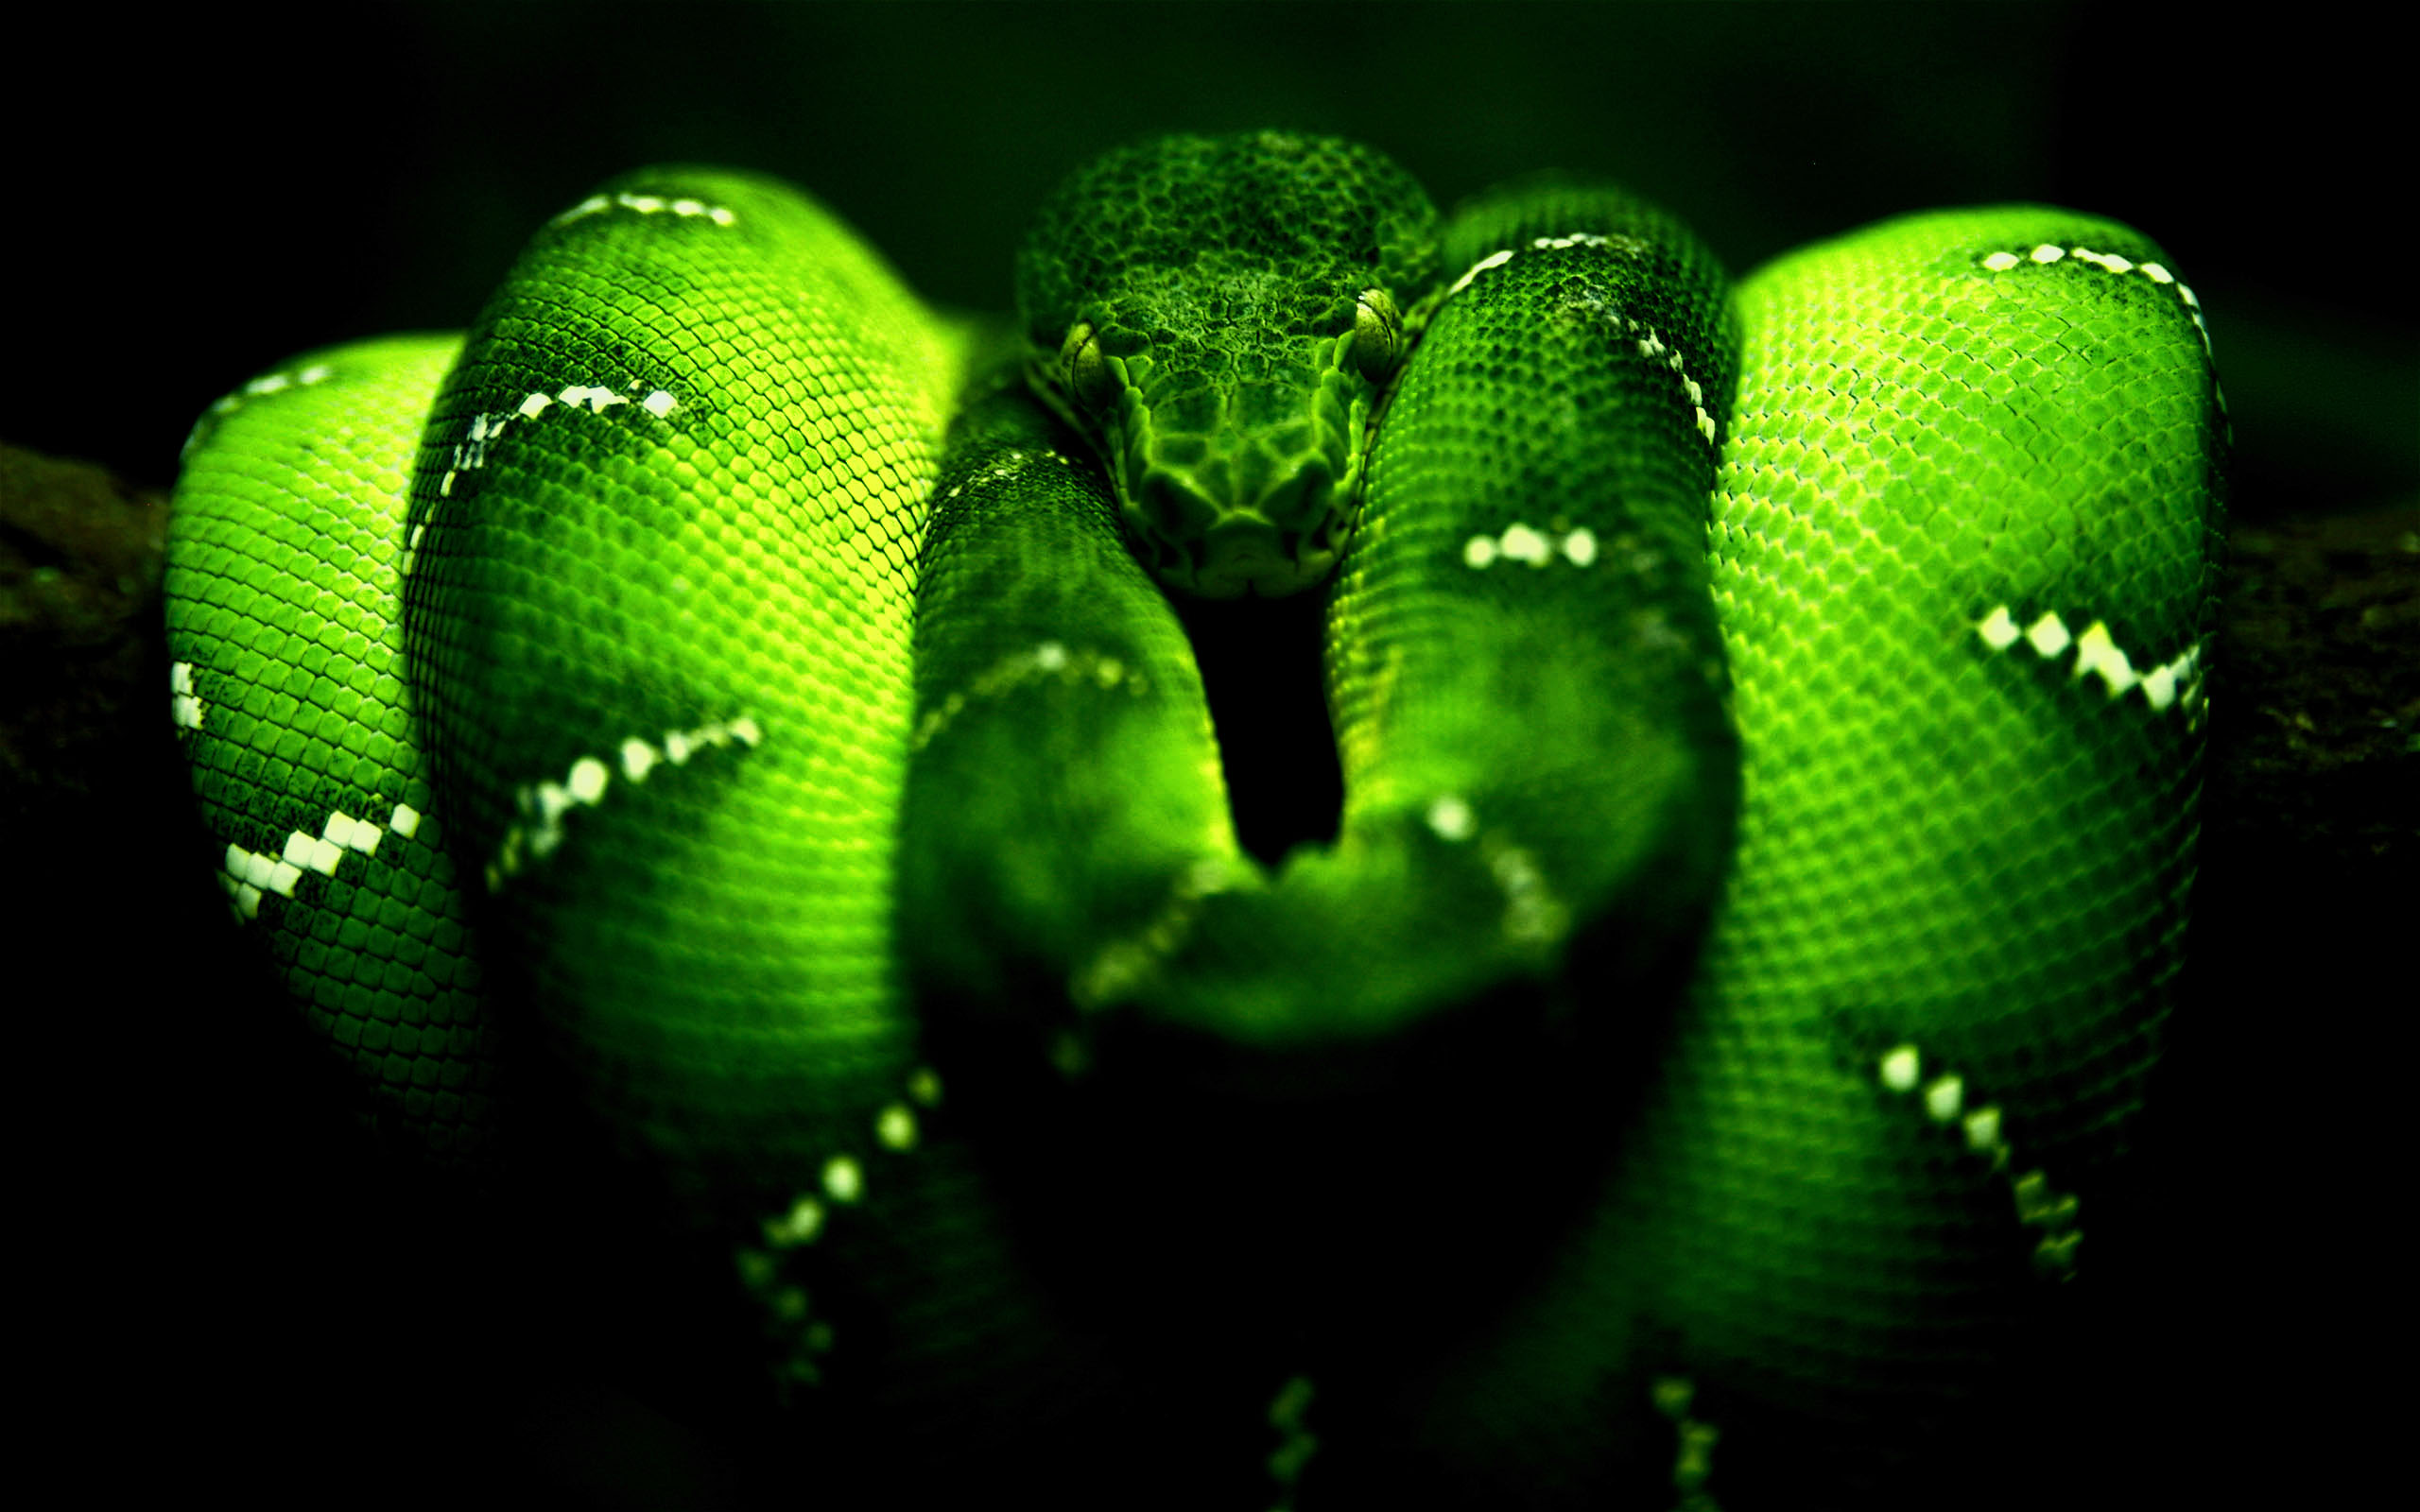 hd snake wallpapers | hd wallpapers pulse